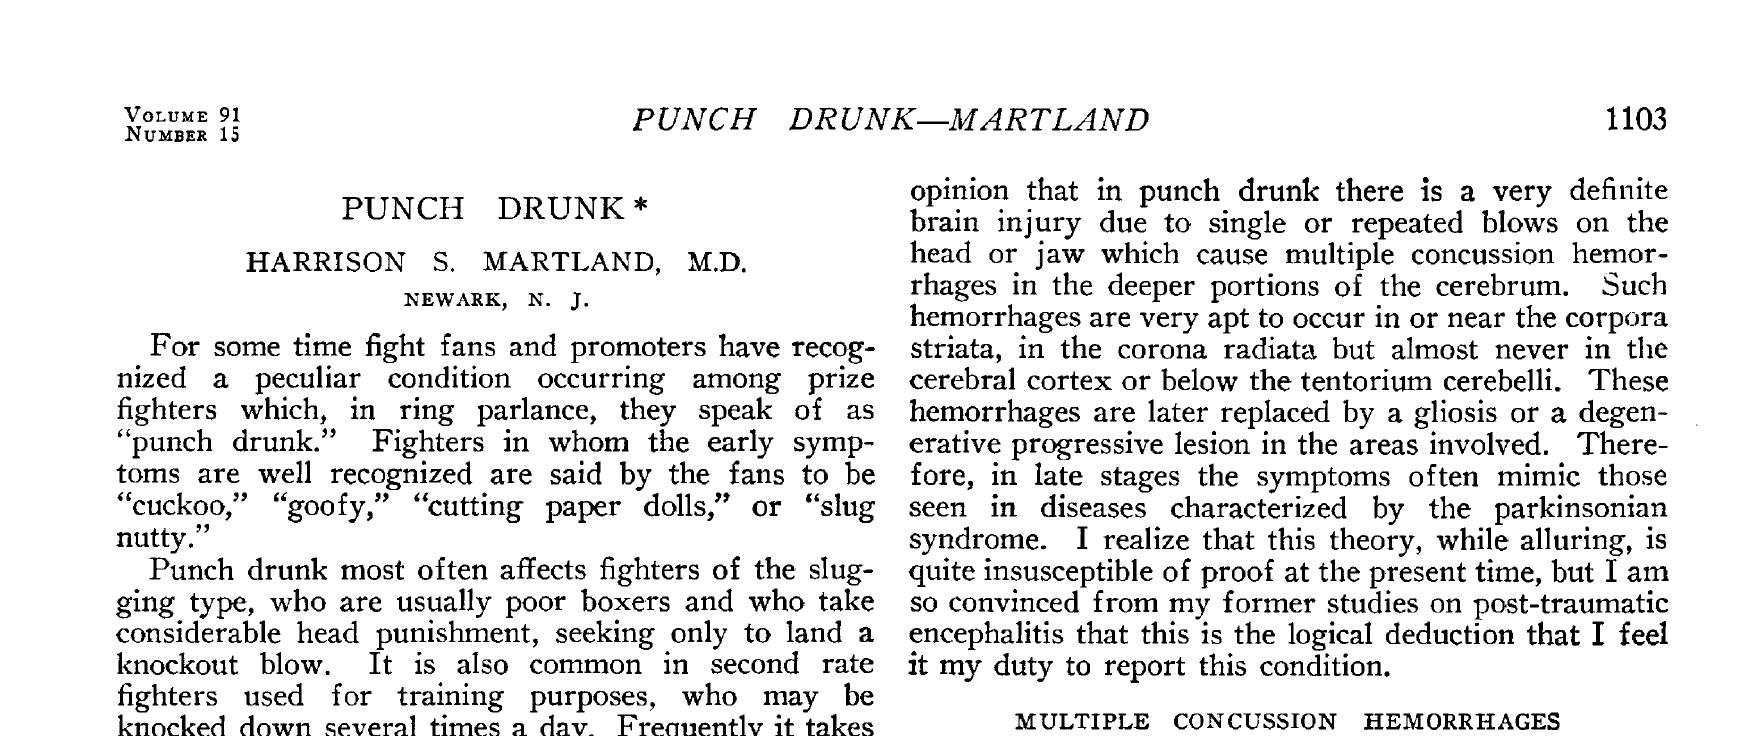 Remember when scientific papers had one author?